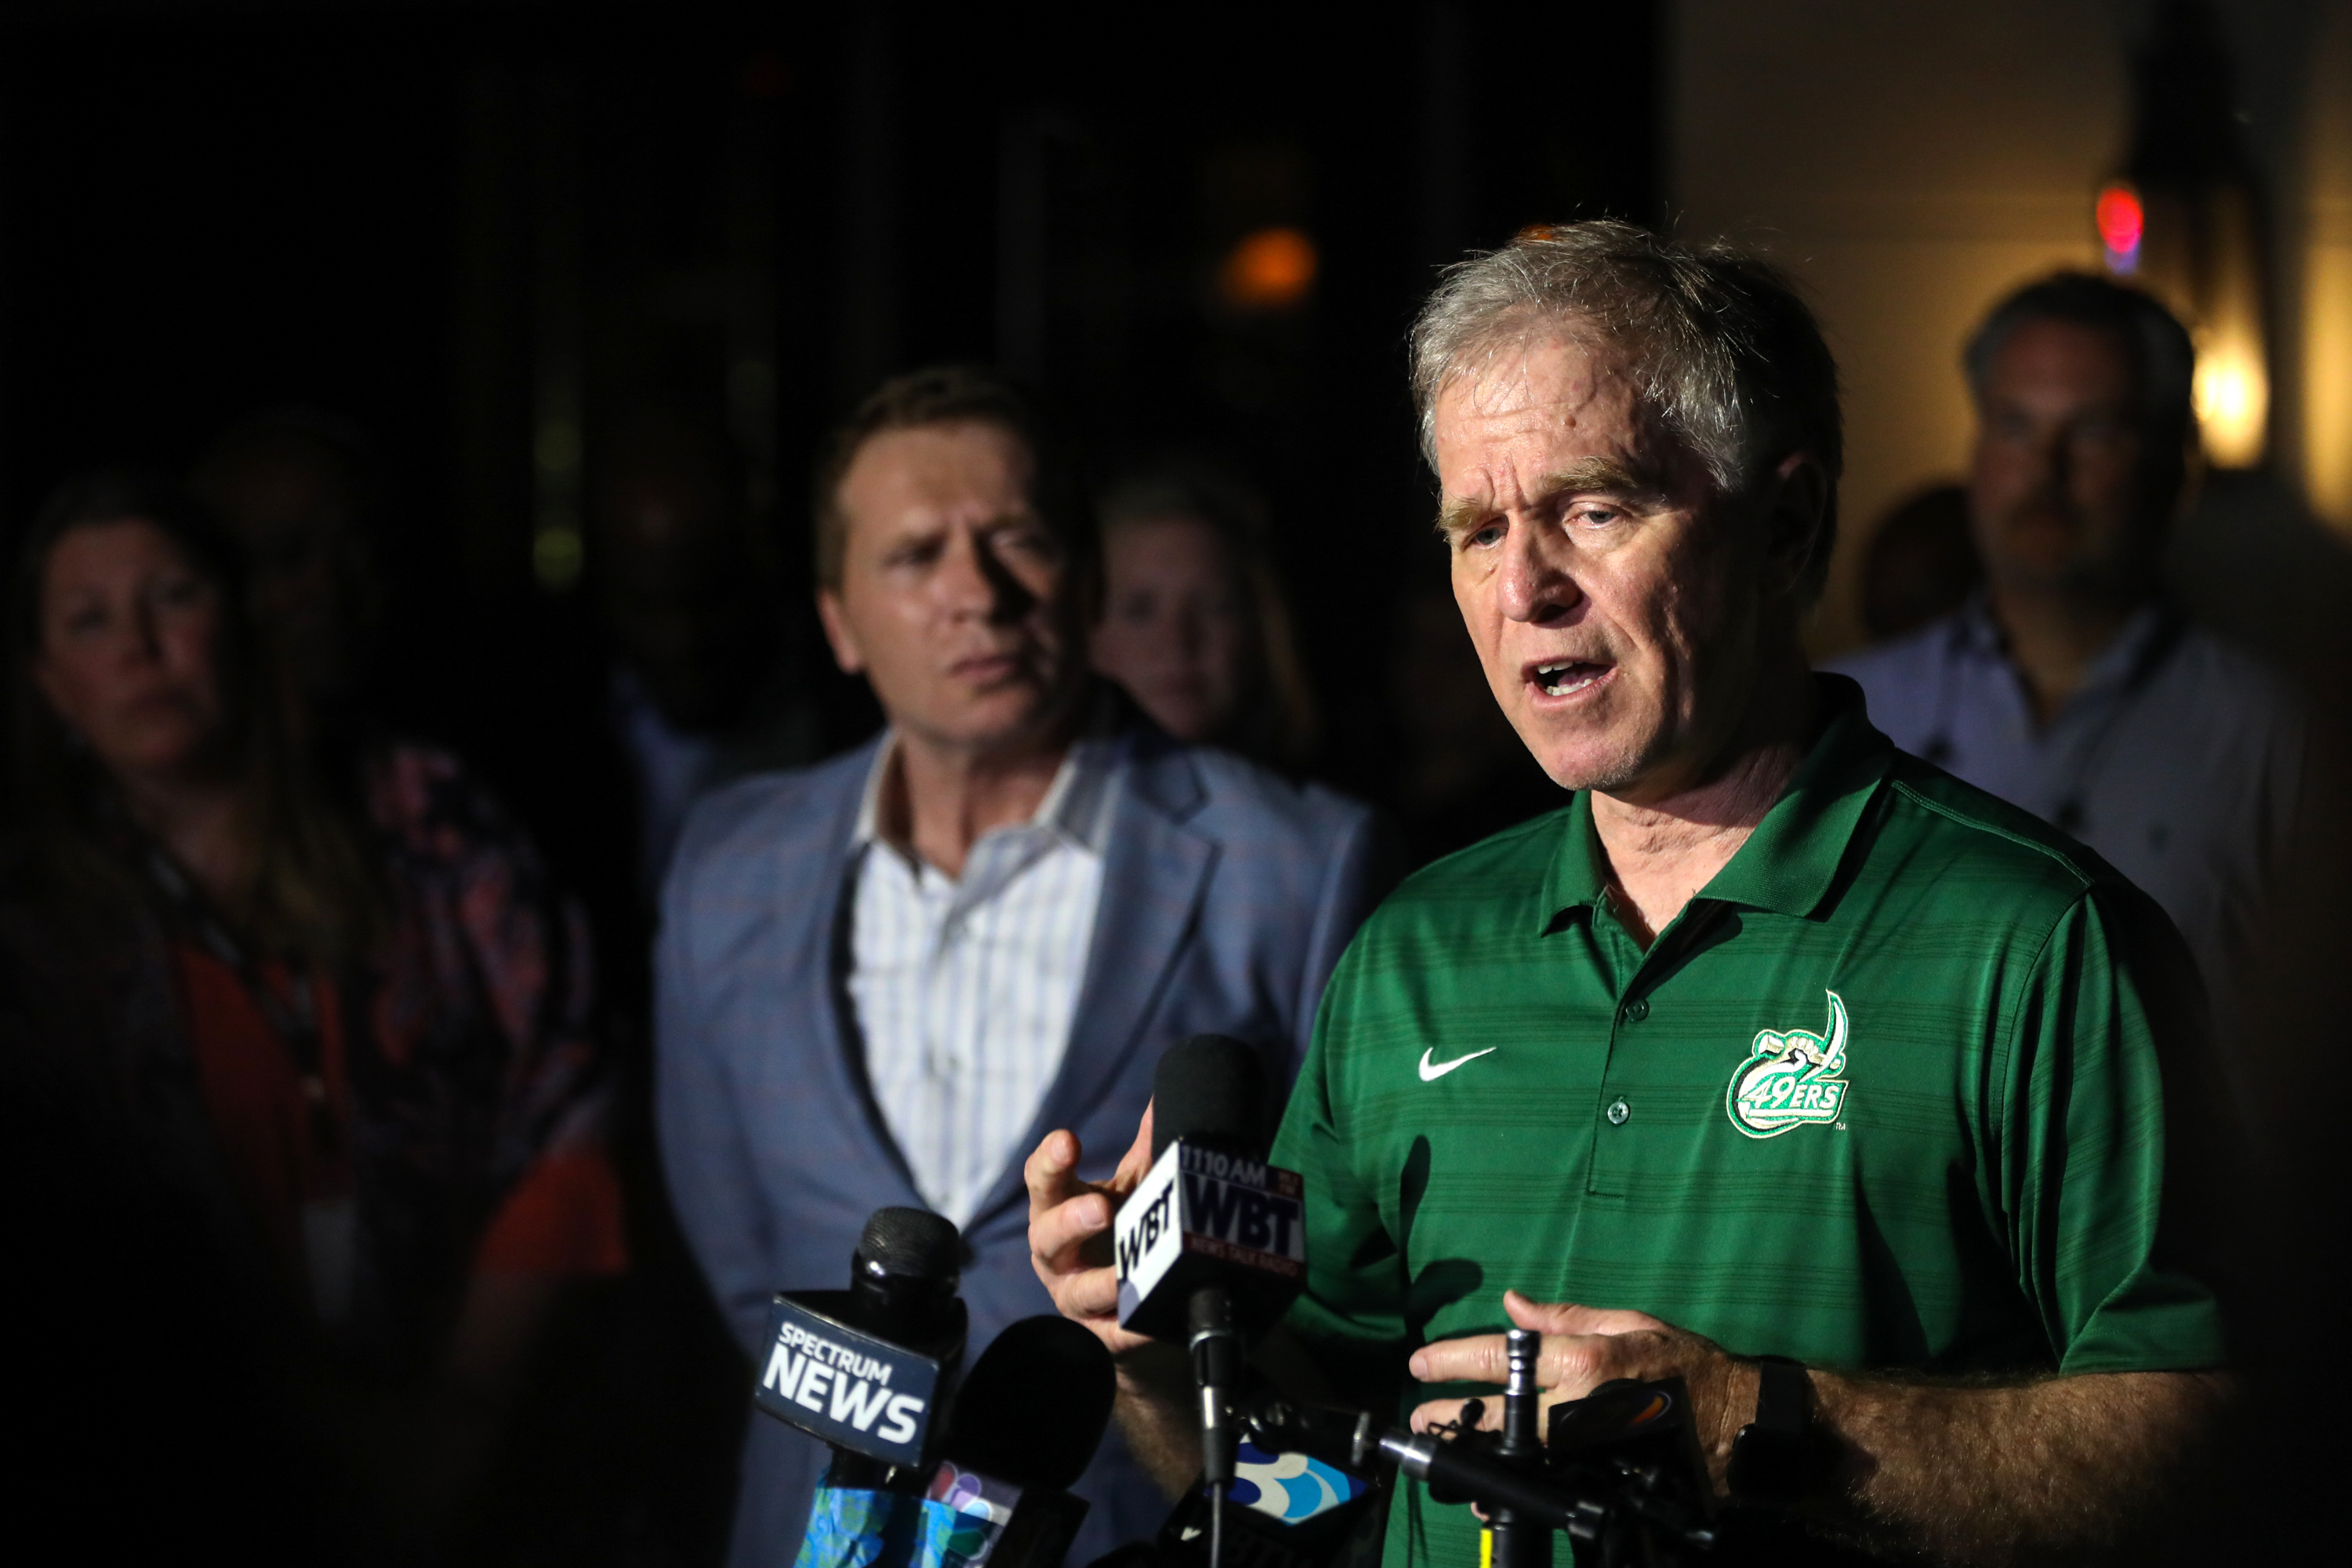 University of North Carolina Charlotte (UNCC) Police Chief Jeff Baker gives an update to the media after a shooting on the University of North Carolina Charlotte campus in University City, Charlotte, on April 30, 2019. (LOGAN CYRUS/AFP/Getty Images)